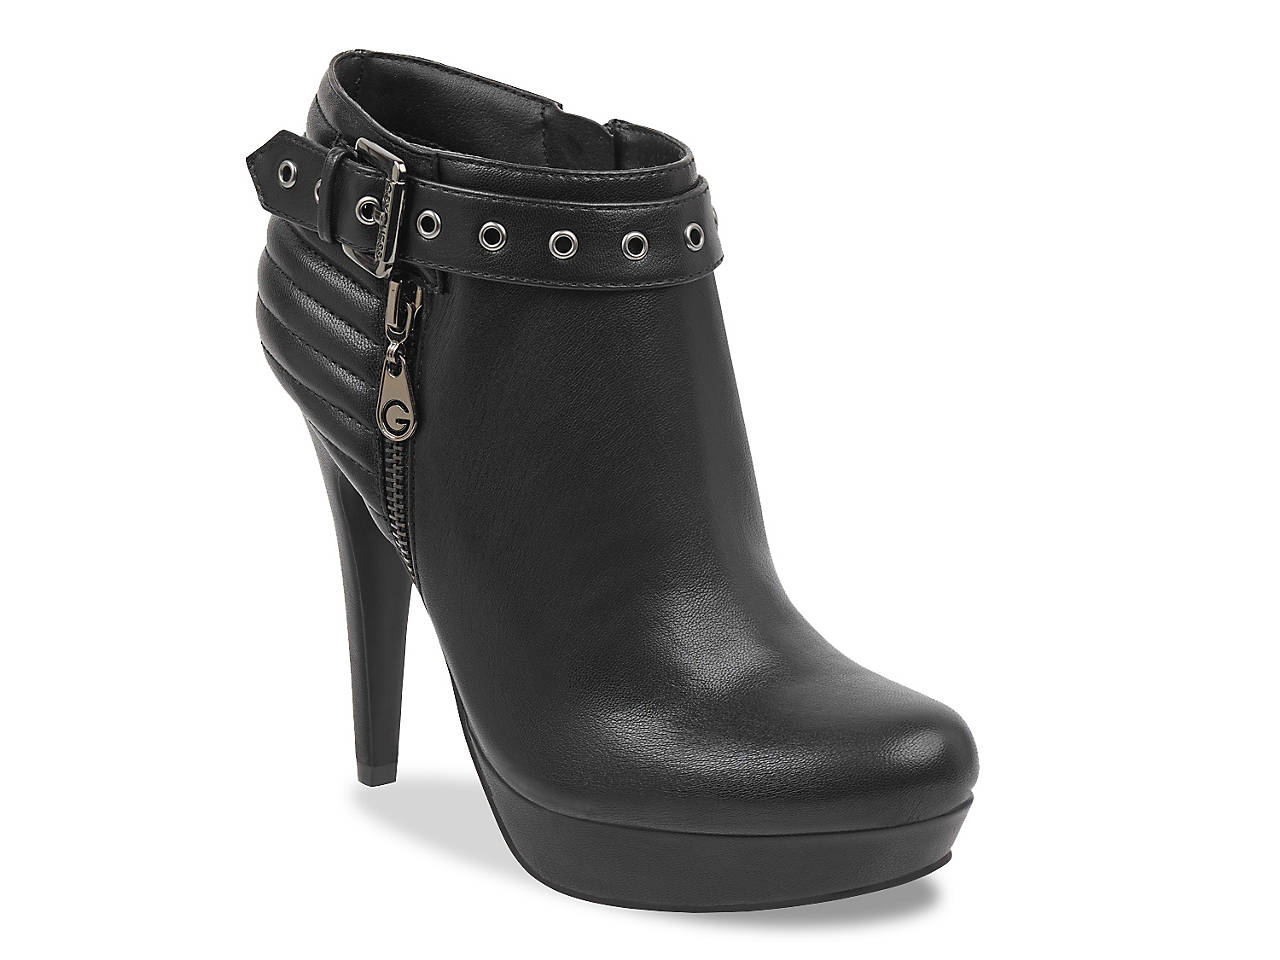 84dad2cb930 G by GUESS Dillyn Platform Bootie Women s Shoes